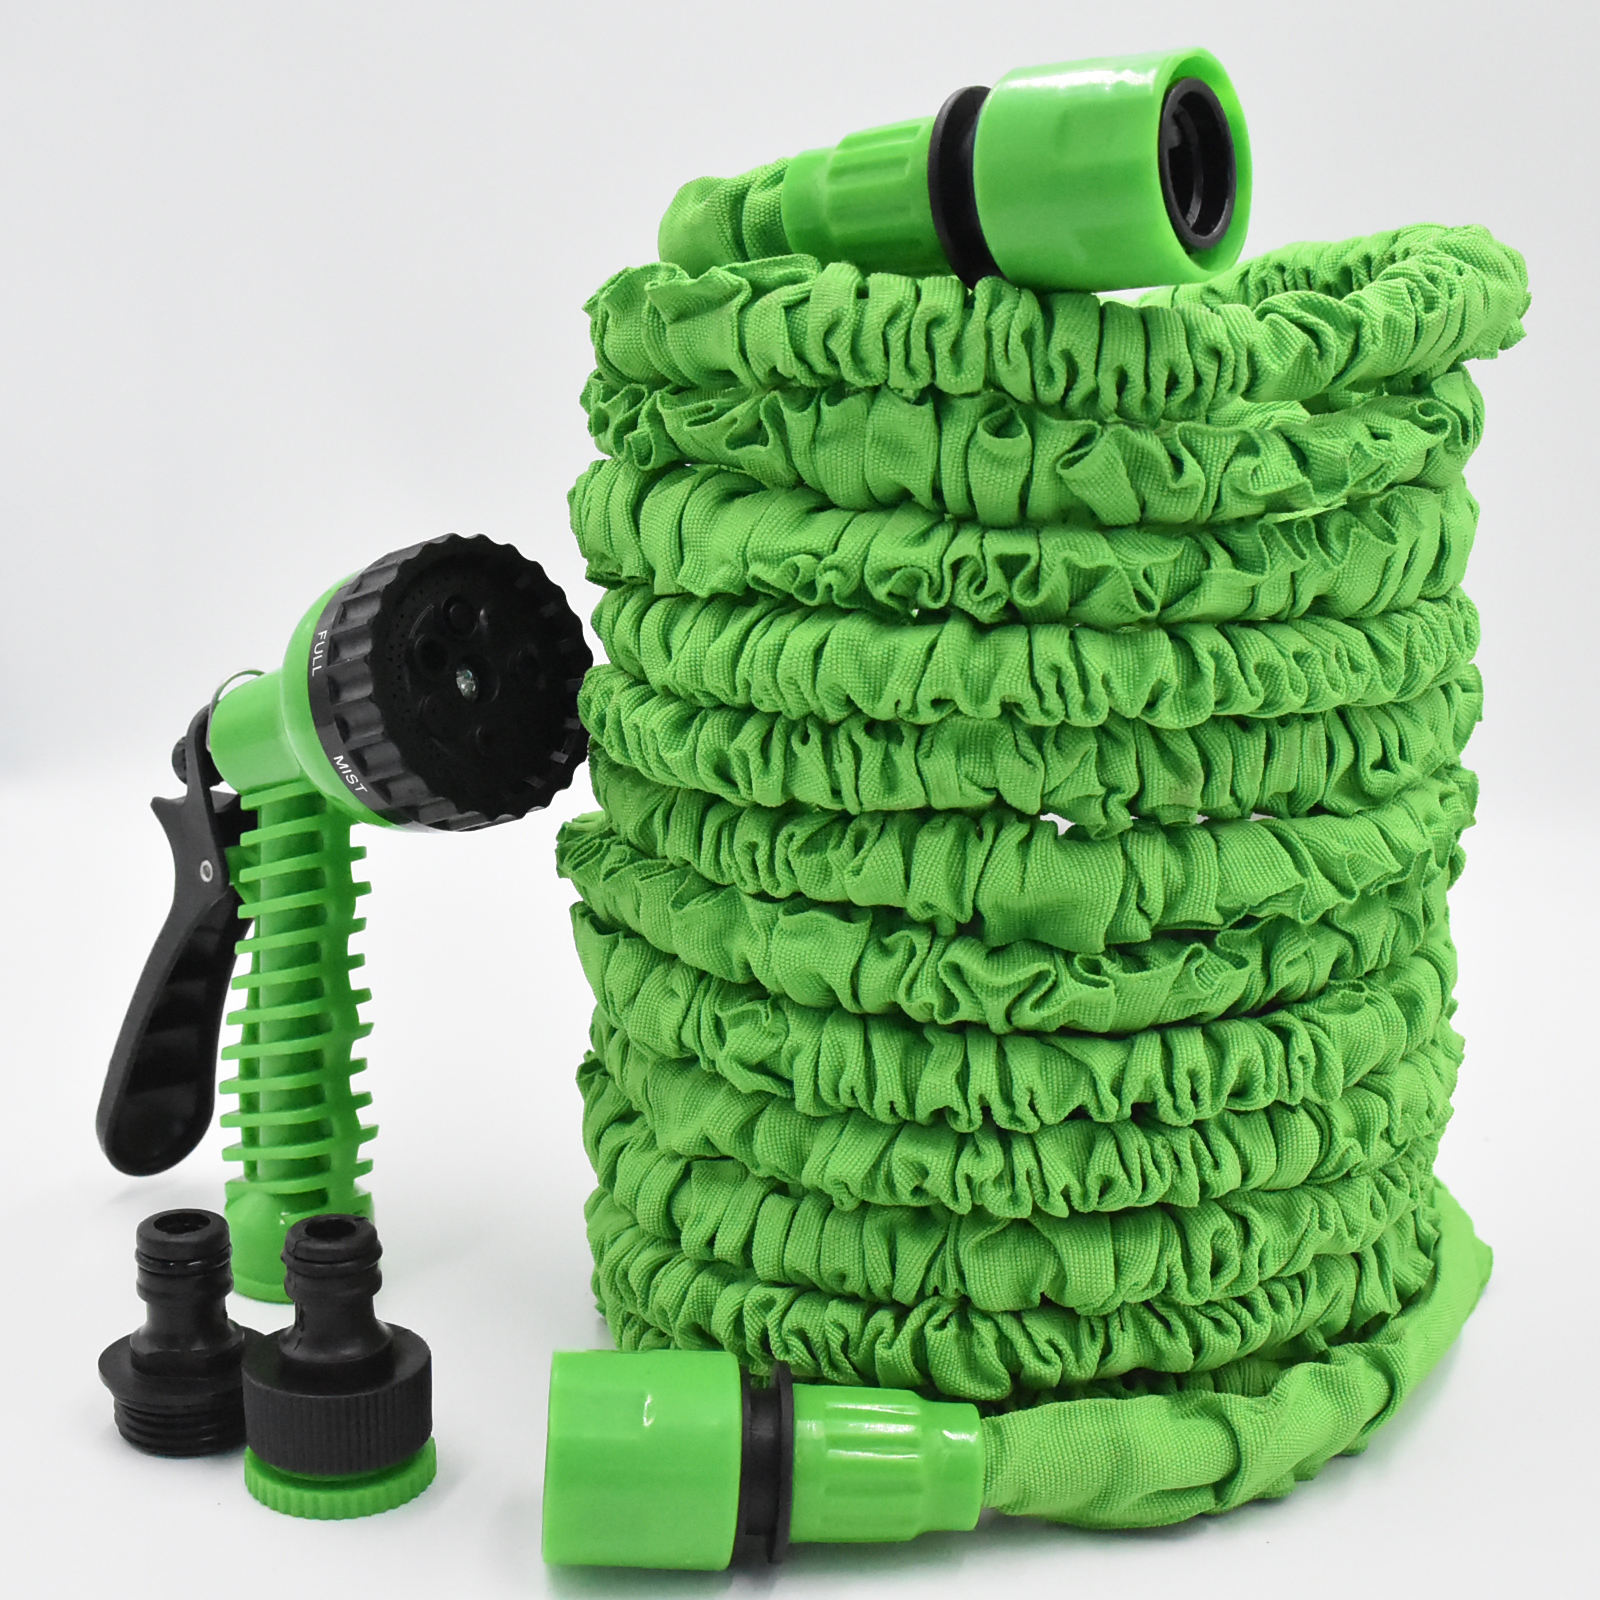 Quality expandable garden hose 50ft 75FT 100FT 150FT magic hose promotion high pressure snake garden magic water hose